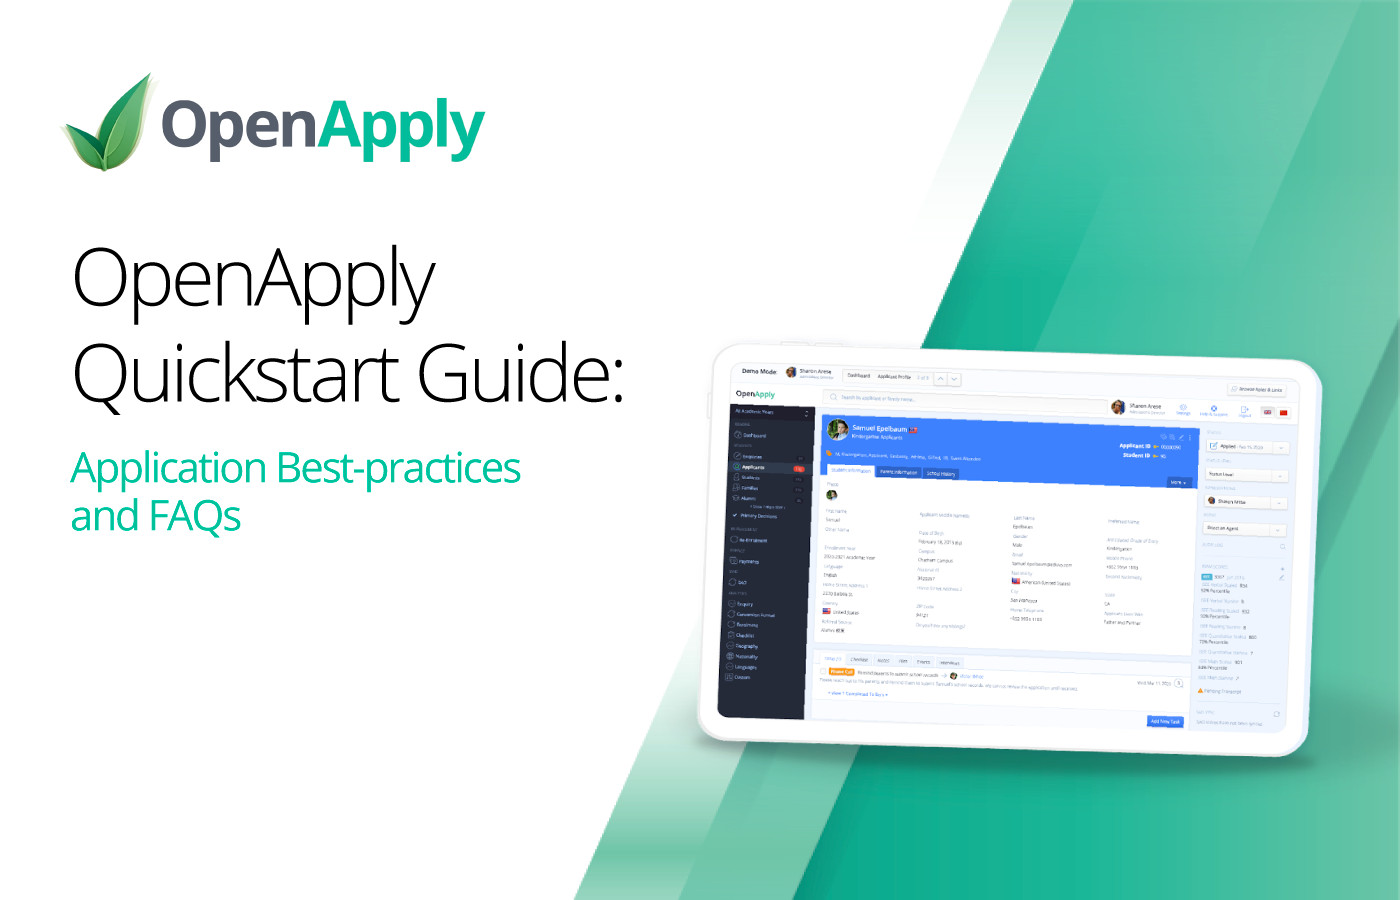 OpenApply QuickStart Guide: Application Best-practices and FAQs